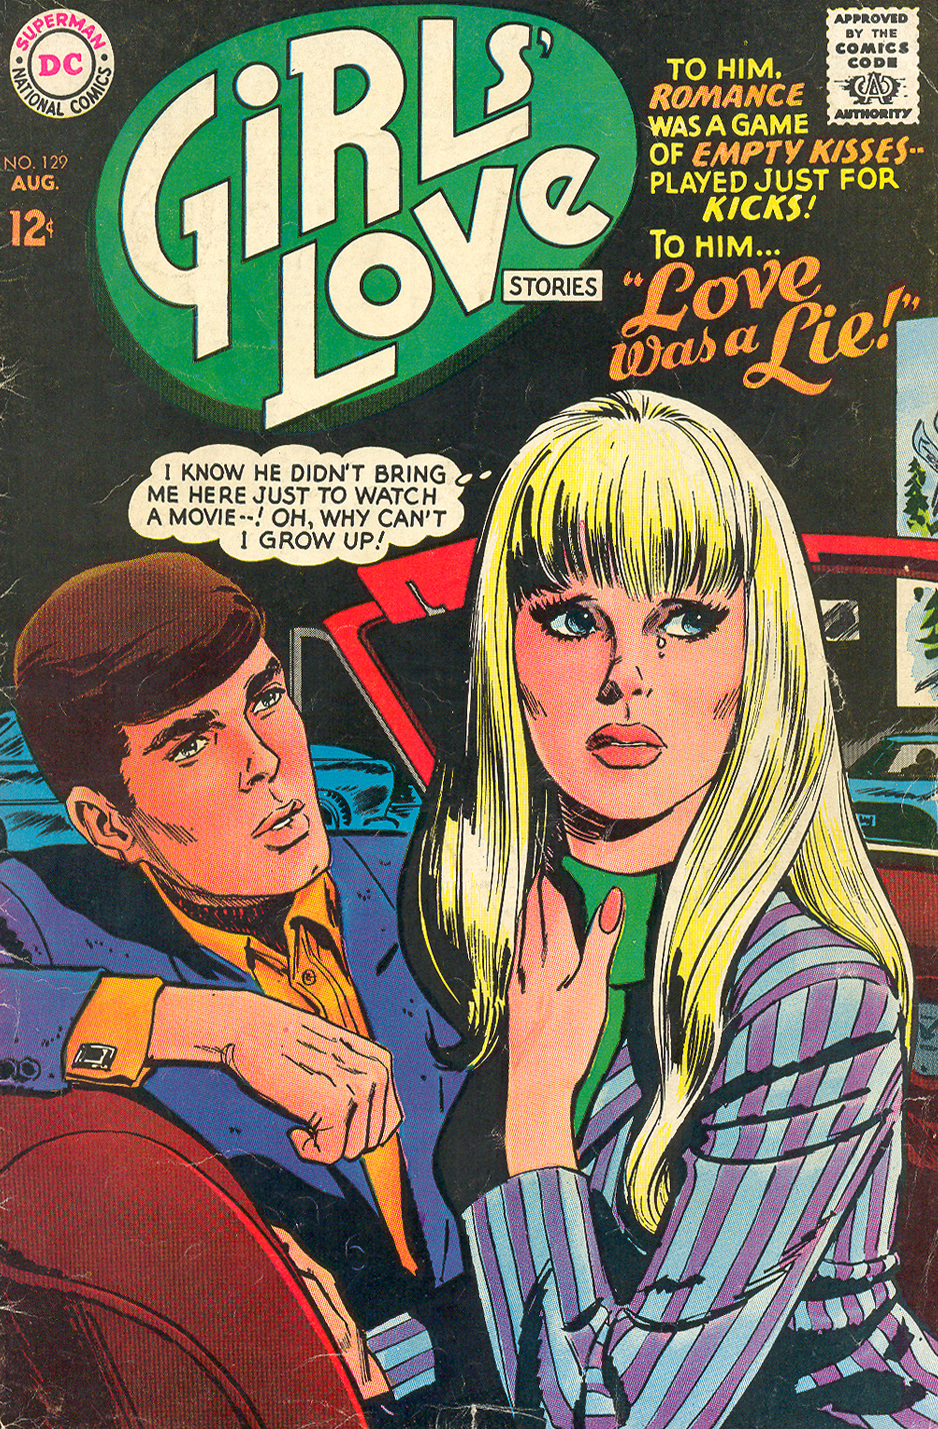 """Love Was a Lie!"" (Cover and pencils by Jay Scott Pike) from Girls' Love Stories #129 (August 1967)"